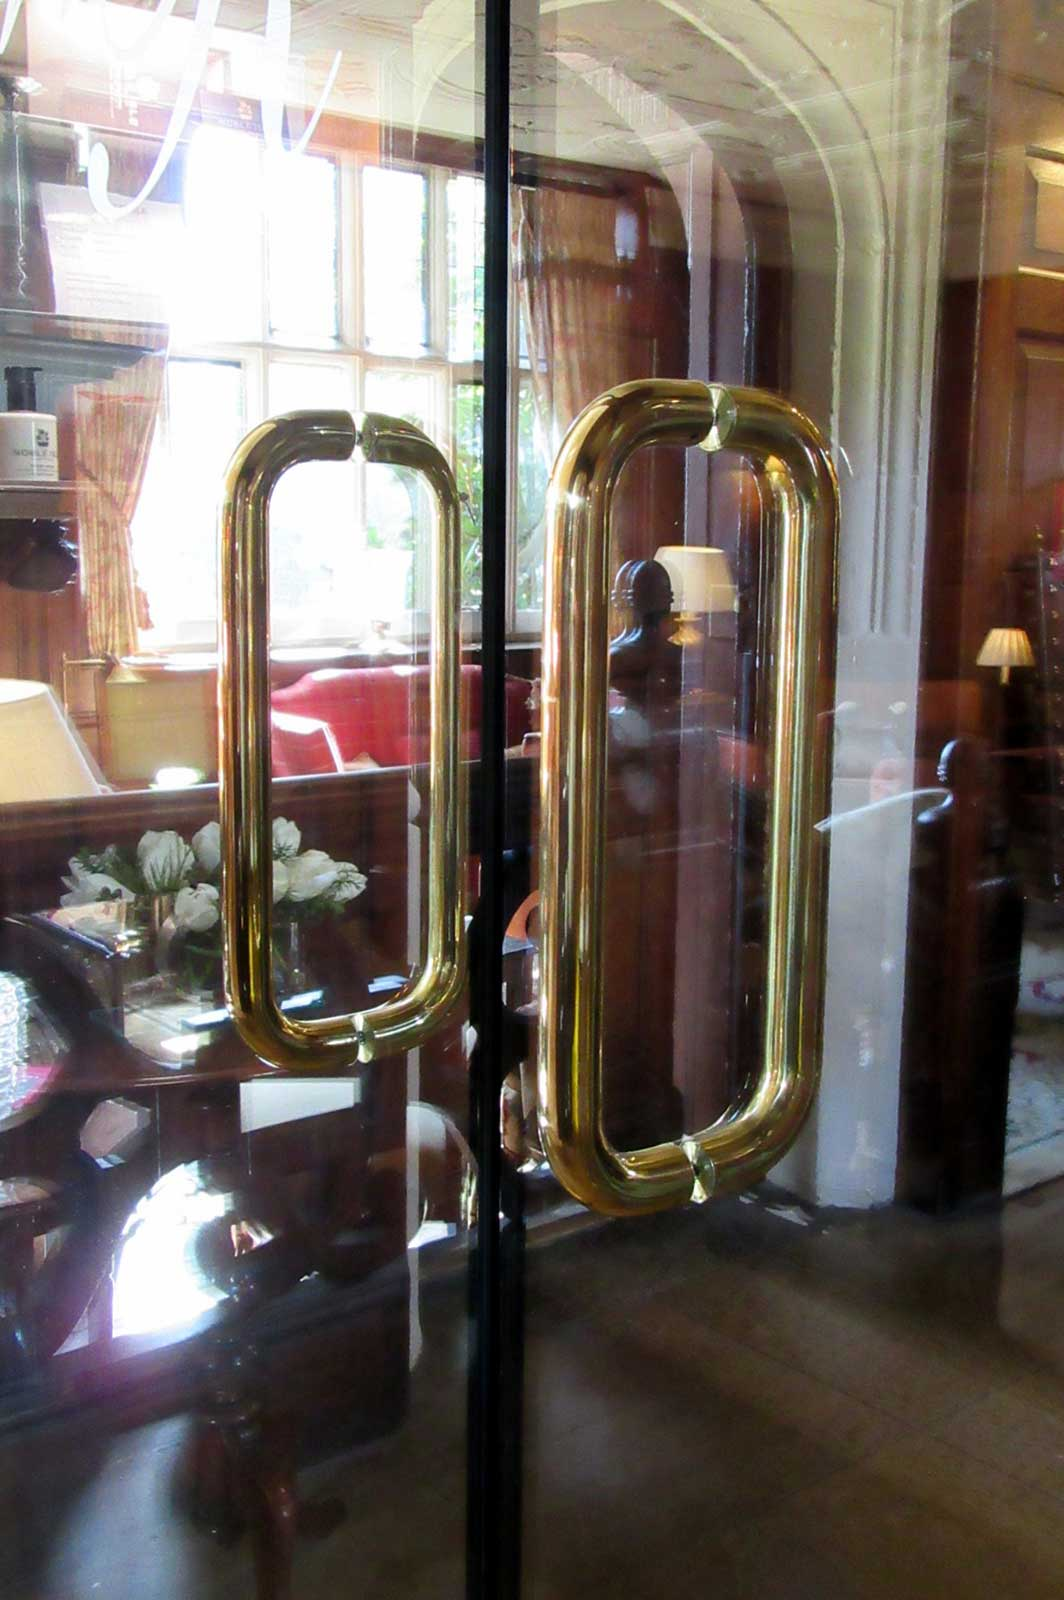 Custom Glass Fire Doors with Polished Brass Handles, Gravetye Manor